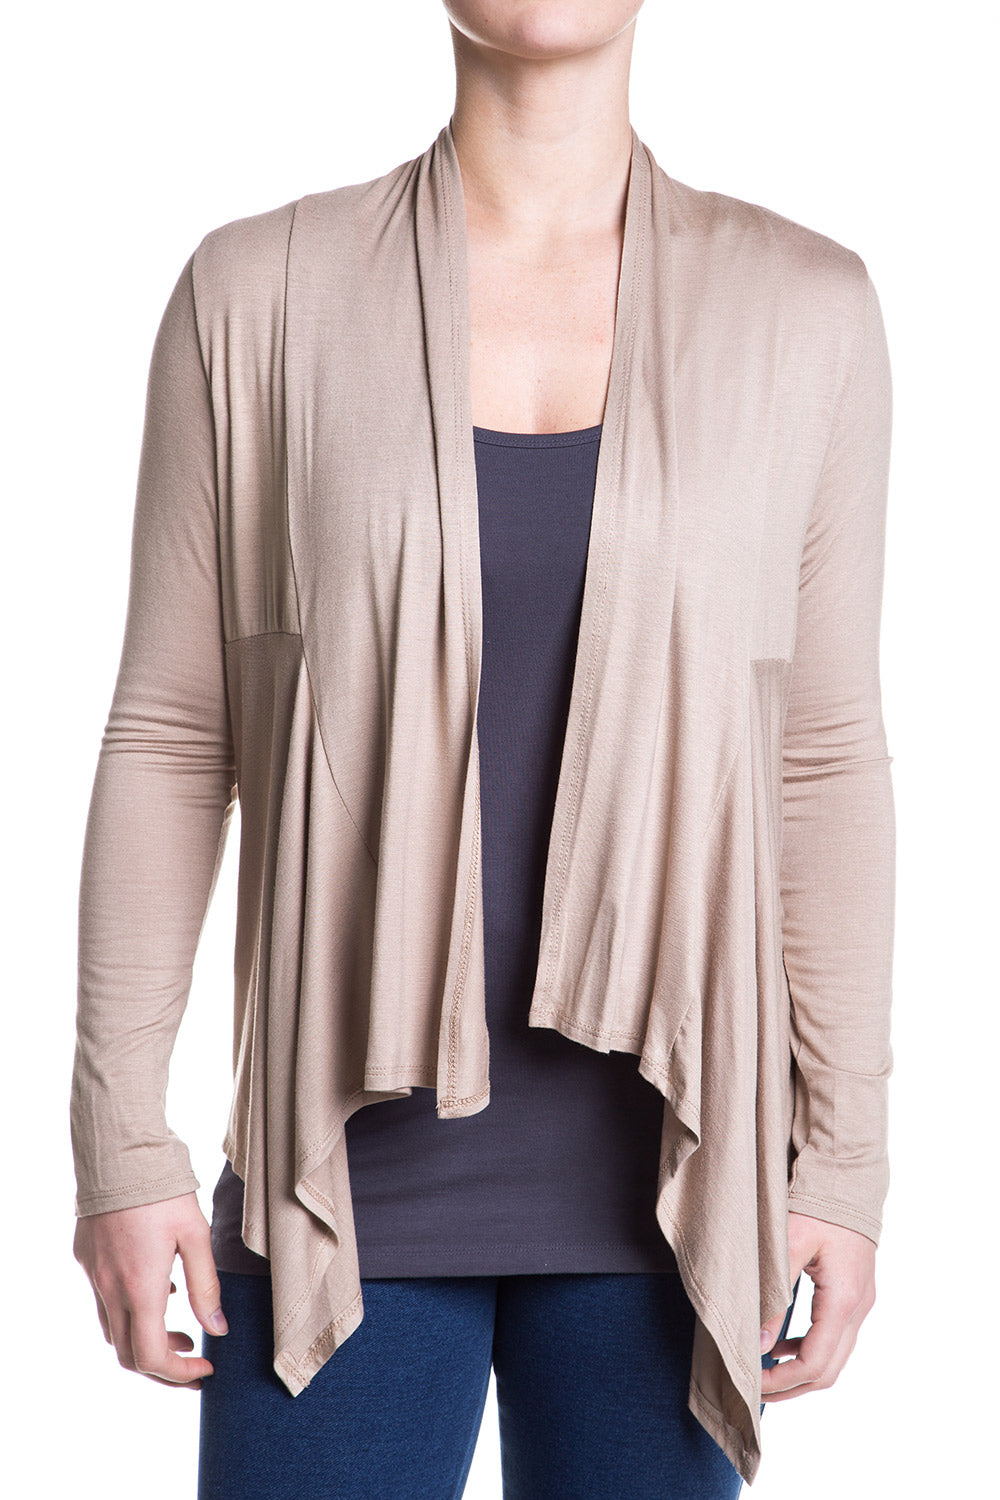 Type 2 Light Layers Cardigan In Beige